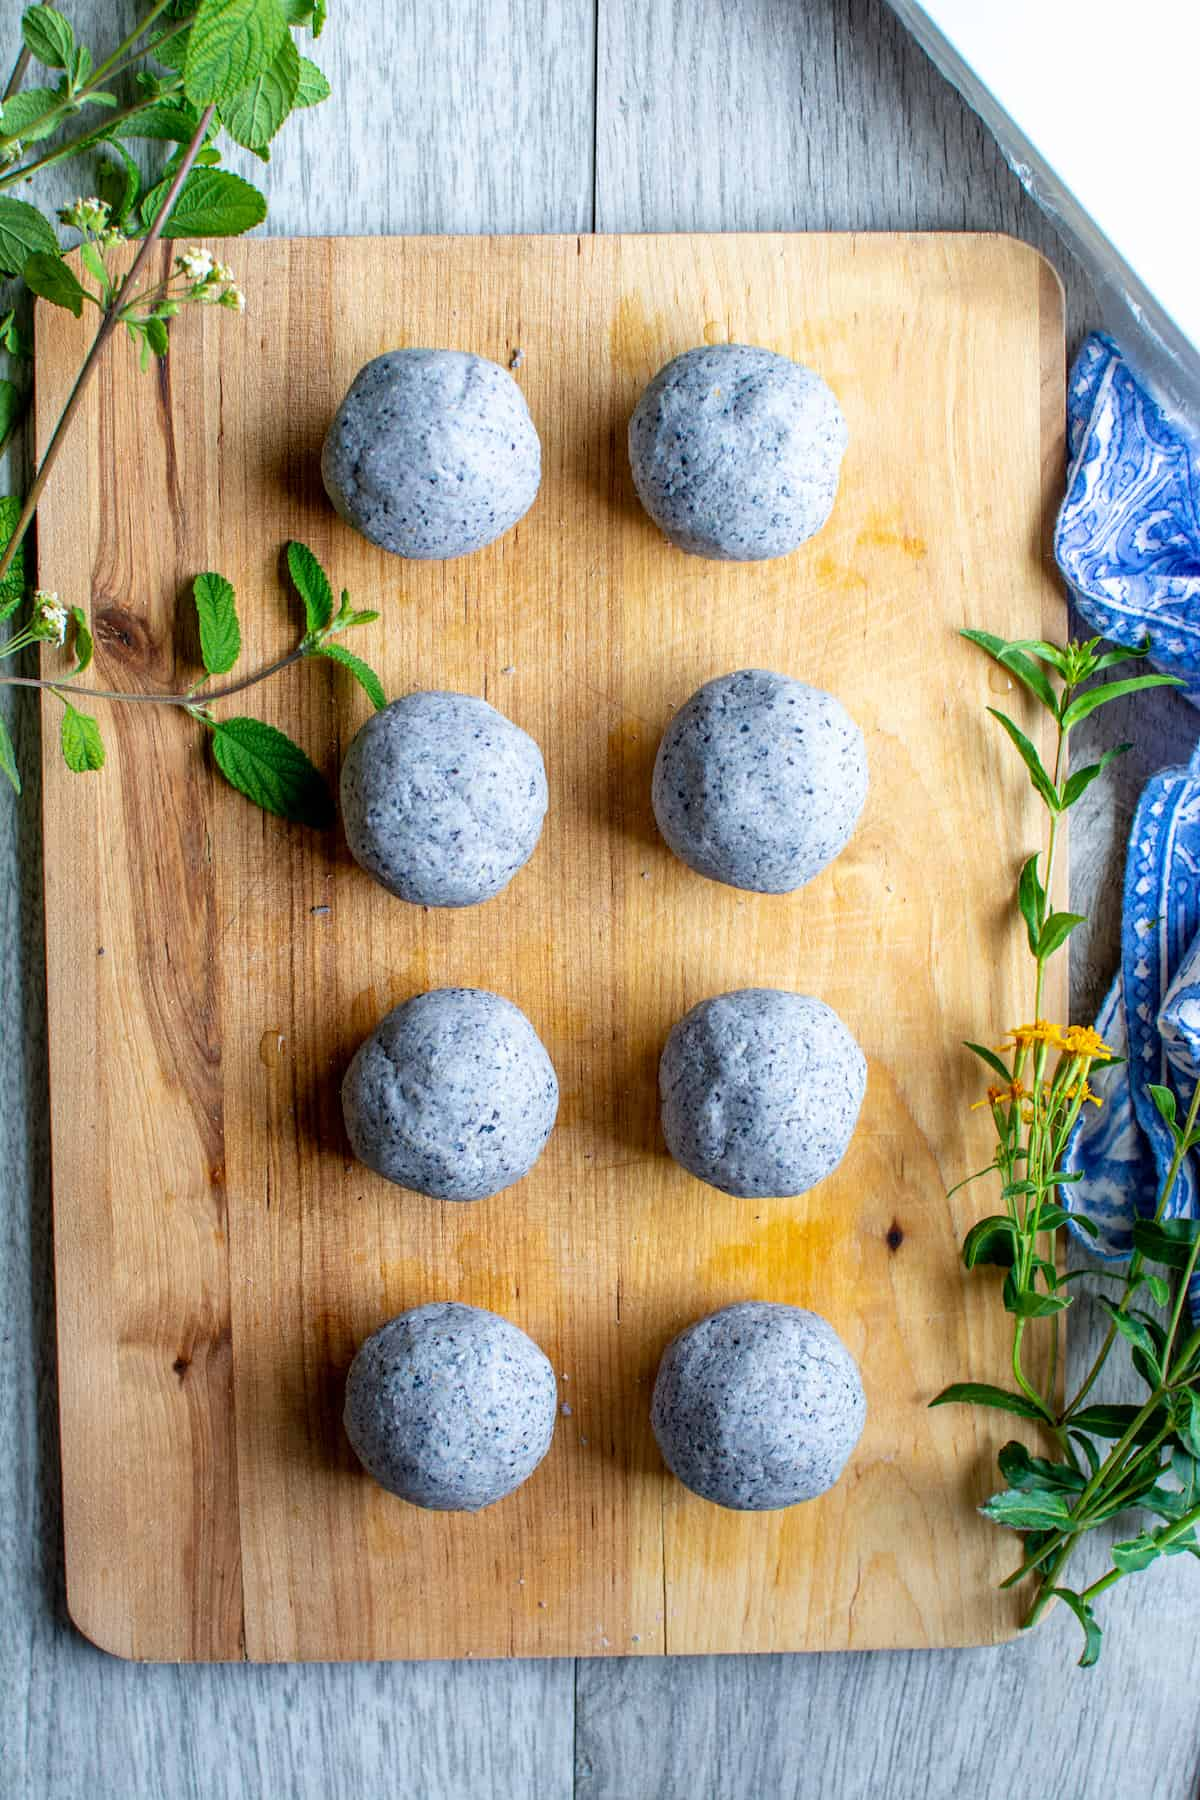 8 balls of blue corn masa dough sitting on a wood cutting board surrounded by sprigs of Mexican oregano and tarragon.